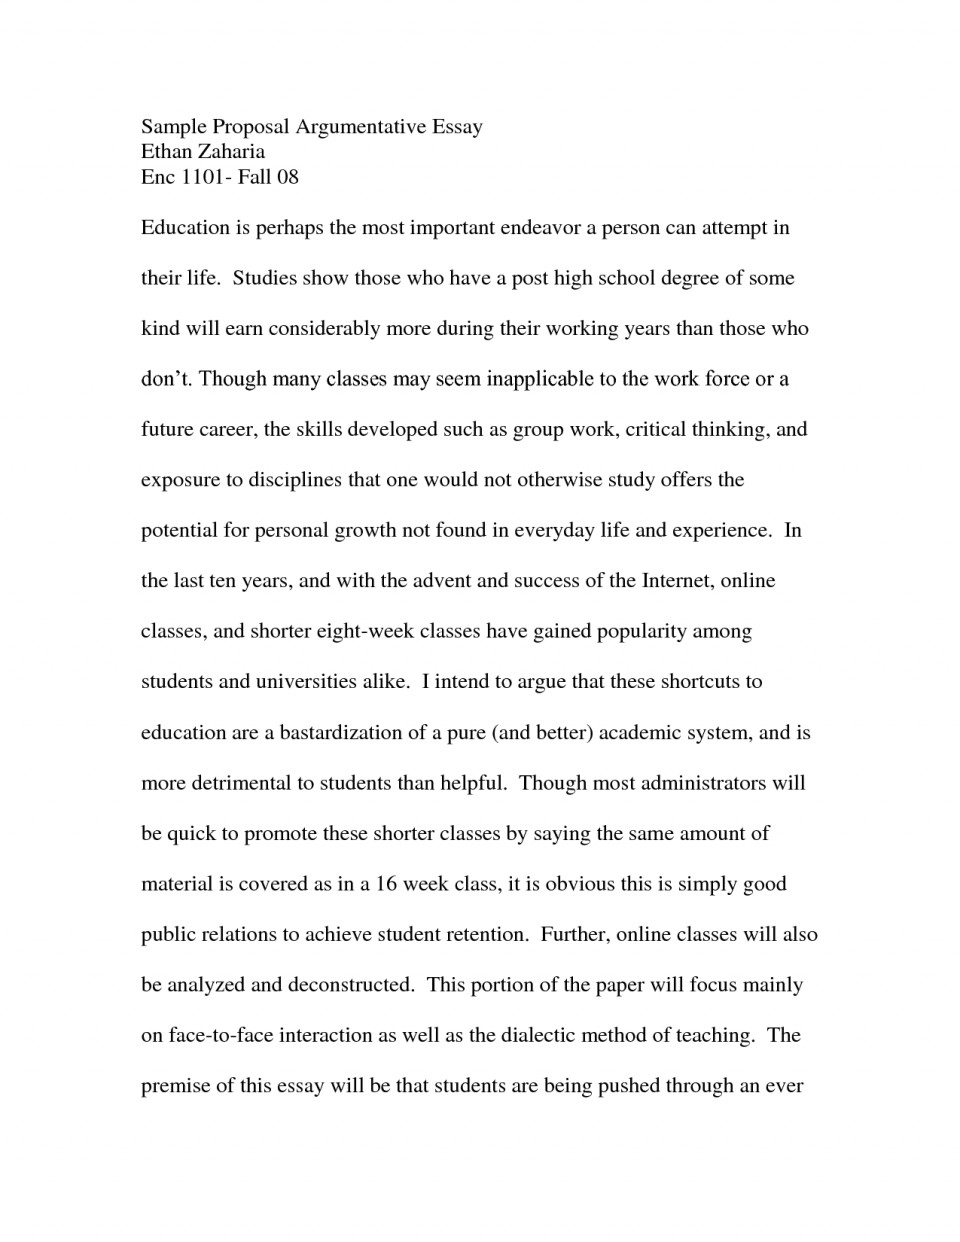 016 Essay Example 3d7hsocgst How To Write Claim For Astounding A An Of Value Fact And Support 960